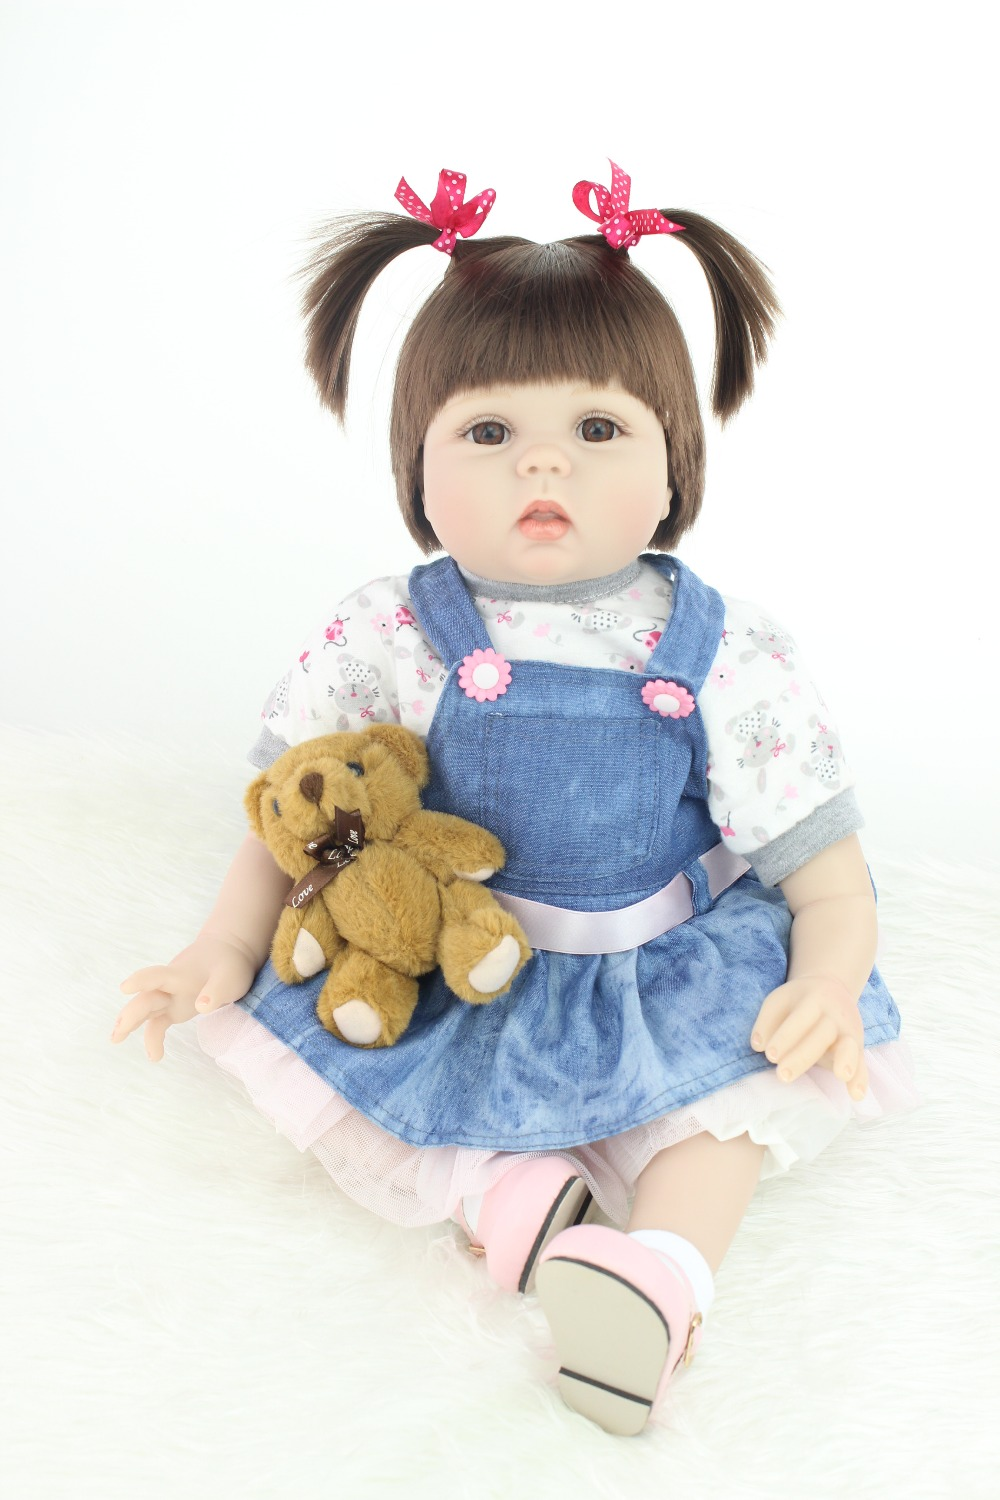 2015 NEW hot sale lifelike reborn baby doll rooted human hair 22mm brown eyes fashion doll Christmas gift old gift 2015 new design 24inch reborn toddler baby doll rooted human hair fridolin lifelike sweet girl real gentle touch